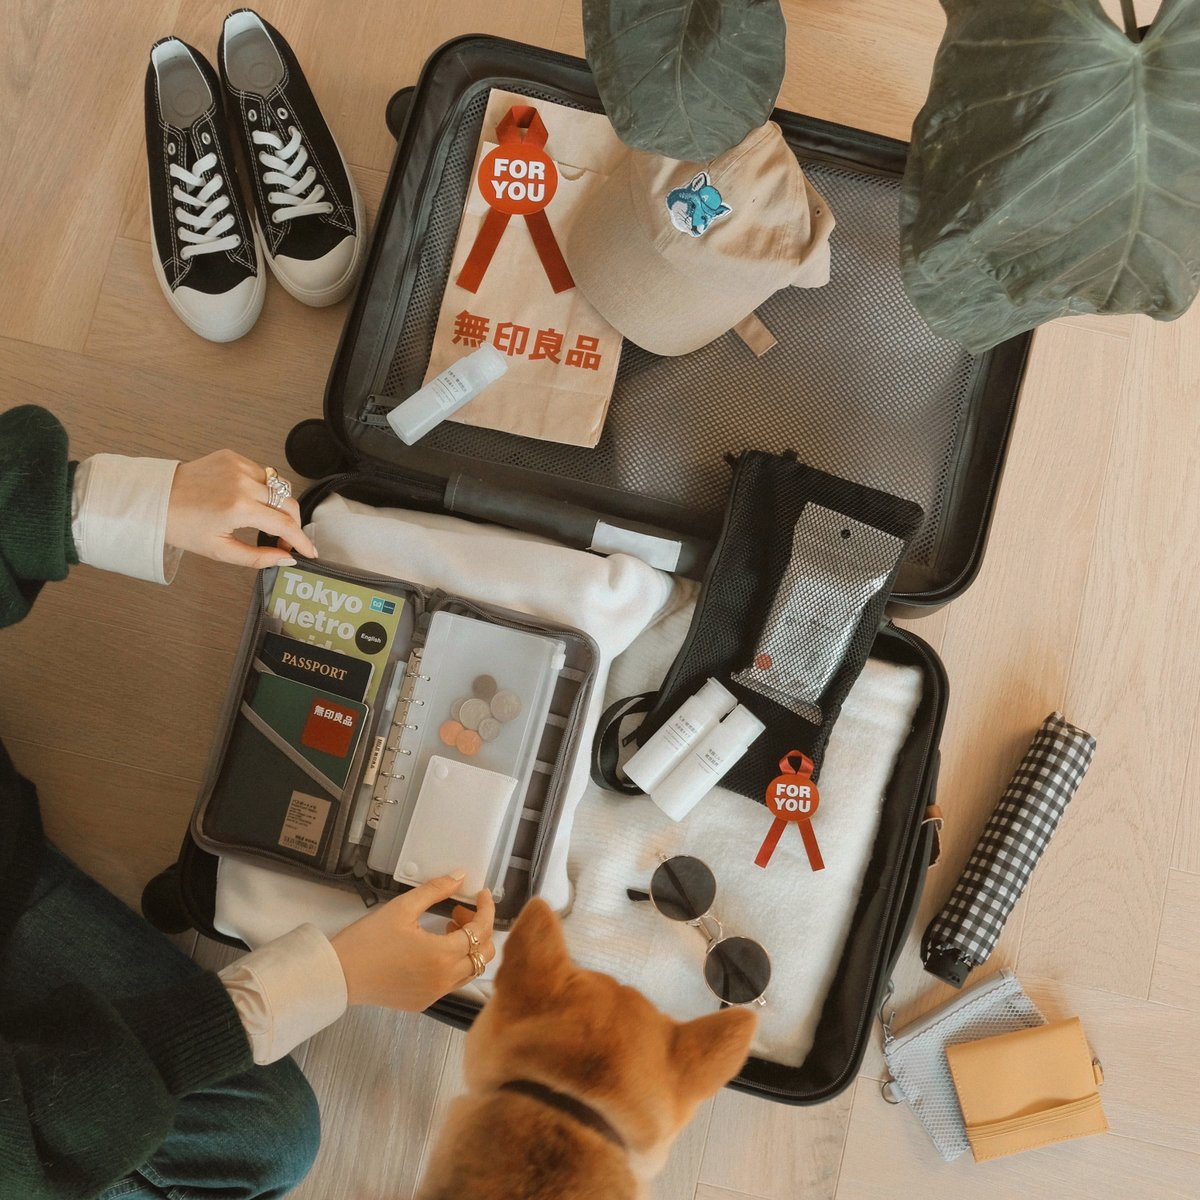 Muji Usa On Twitter A Gift Box For The Traveler As Curated By Vivid Even On The Go Stay Organized With Muji S Range Of Travel Accessories Find A Variety Of Mujigifts For